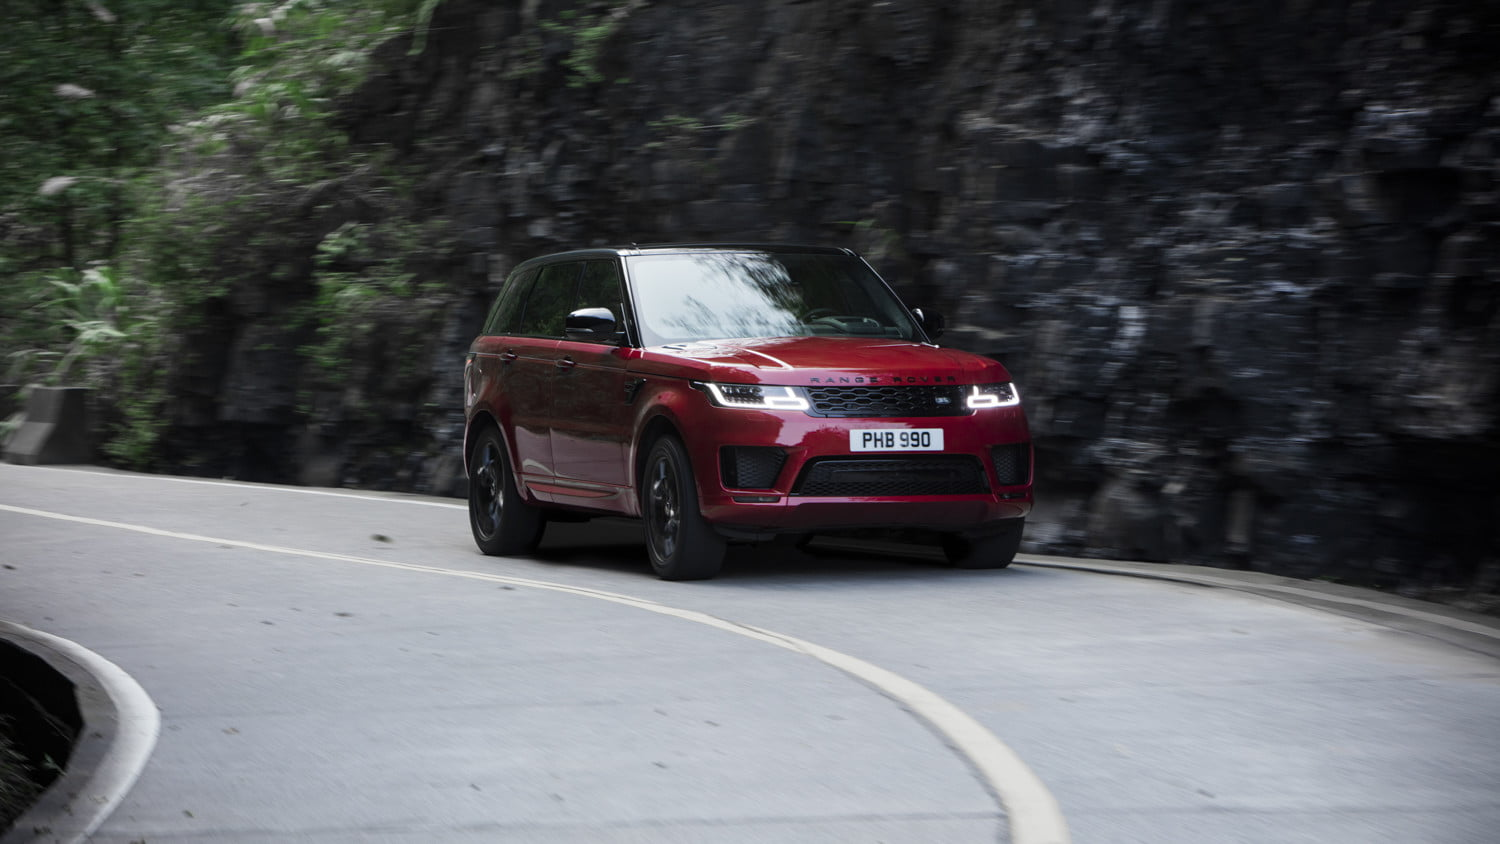 range rover sport heavens gate off road test in china 6